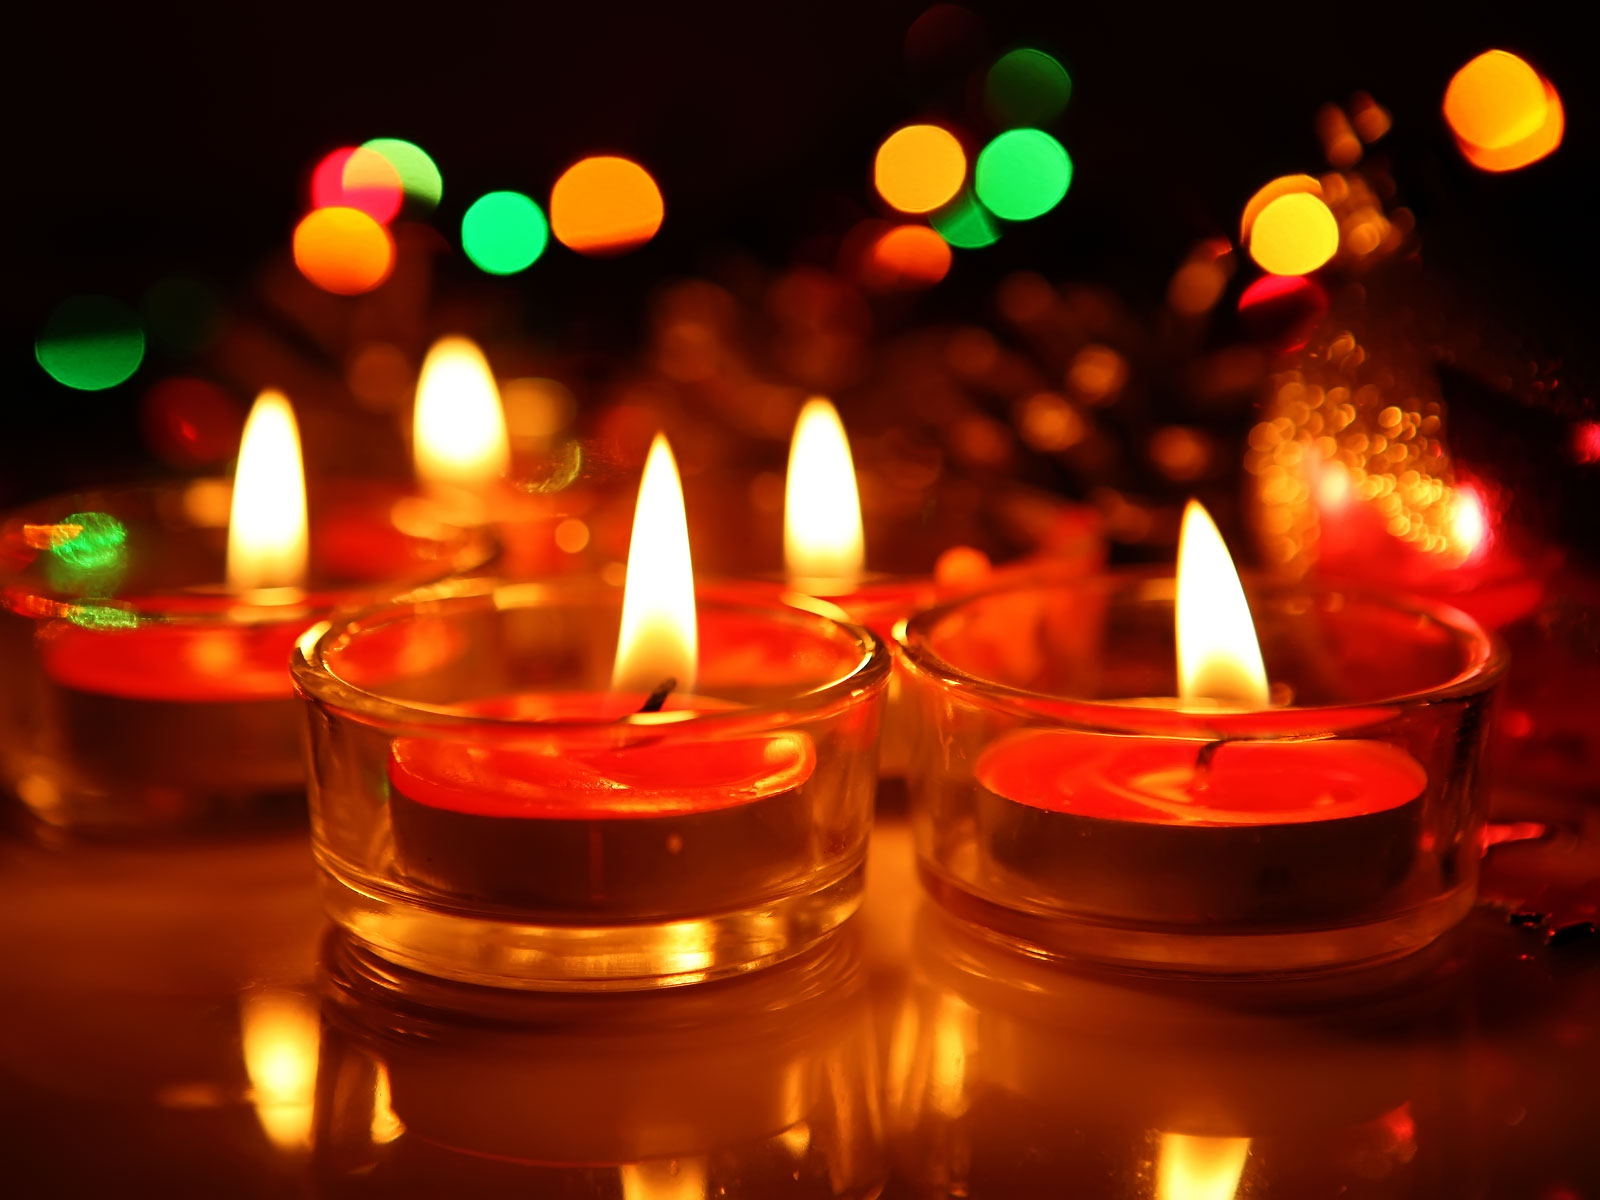 HD Quality Happy Diwali Images Pictures Wallpapers Photos Pics